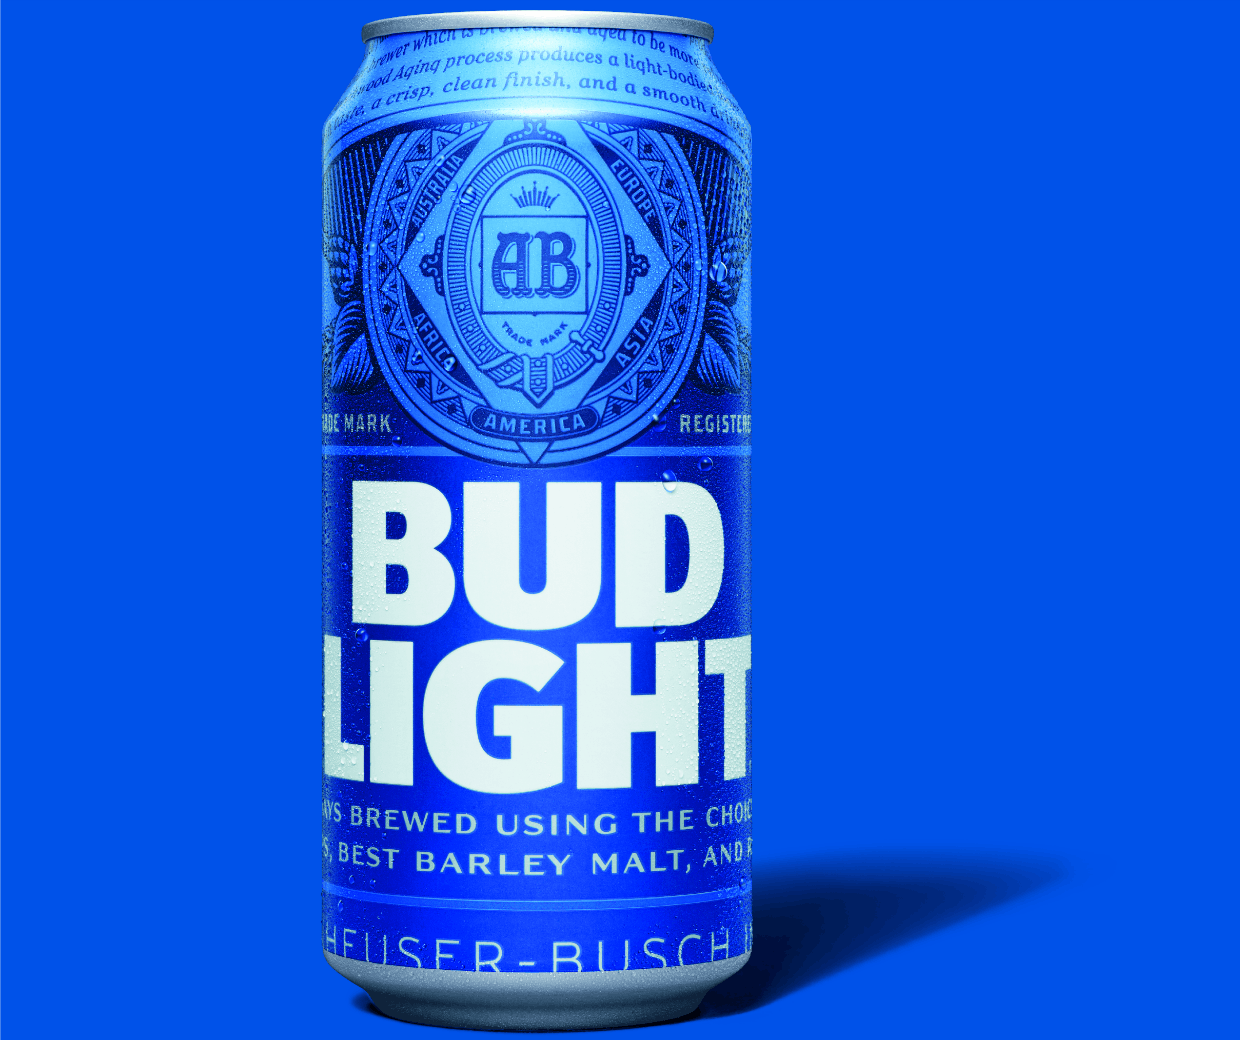 Marvelous Donu0027t Call It A Comeback: Bud Light Re Enters The UK Market After 16 Years  Away   Marketing Week Home Design Ideas